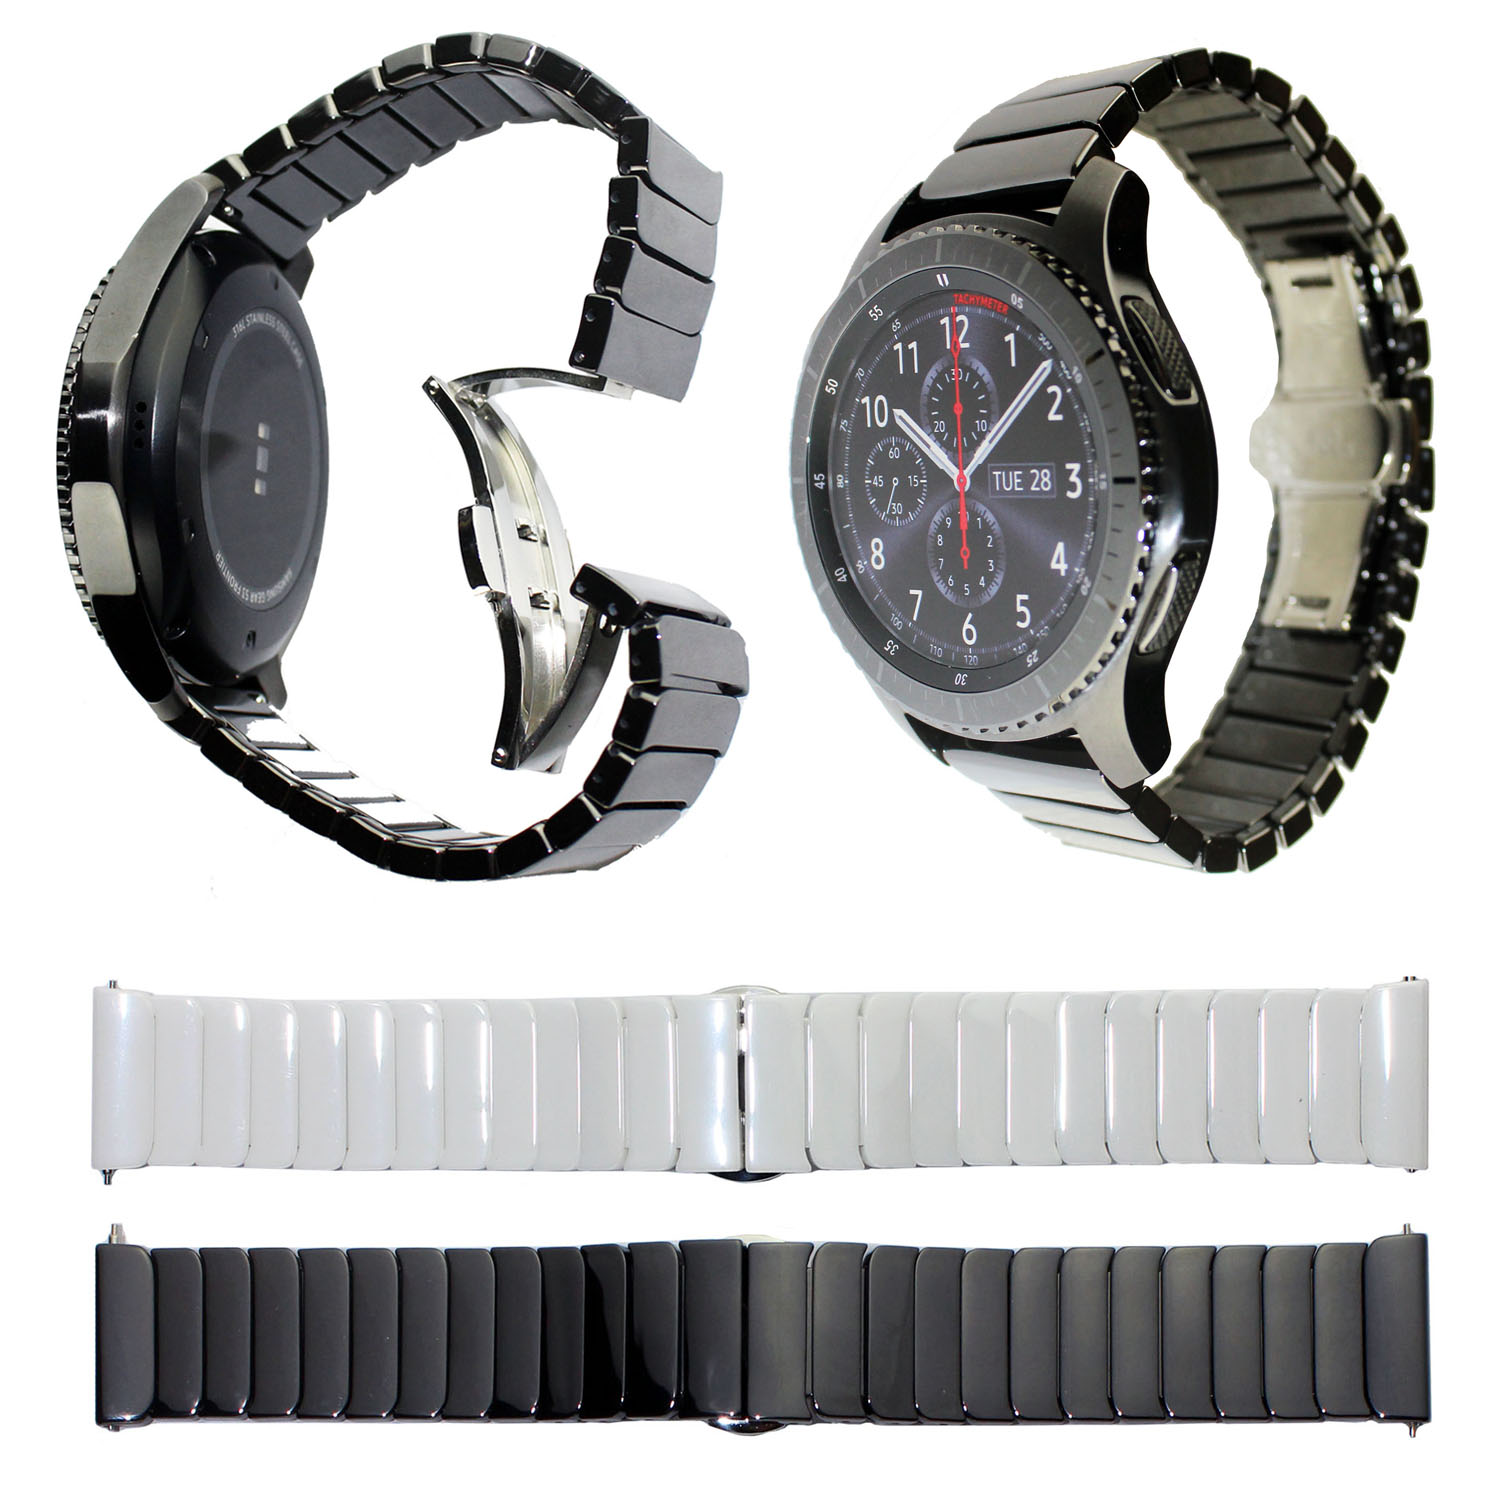 22mm Ceramic Watch Band for Samsung Gear S3 Frontier Strap Butterfly Buckle Wristband for Gear S3 Classic Smart Watch Bracelet crested sport silicone strap for samsung gear s3 classic frontier replacement rubber band watch strap for samsung gear s3